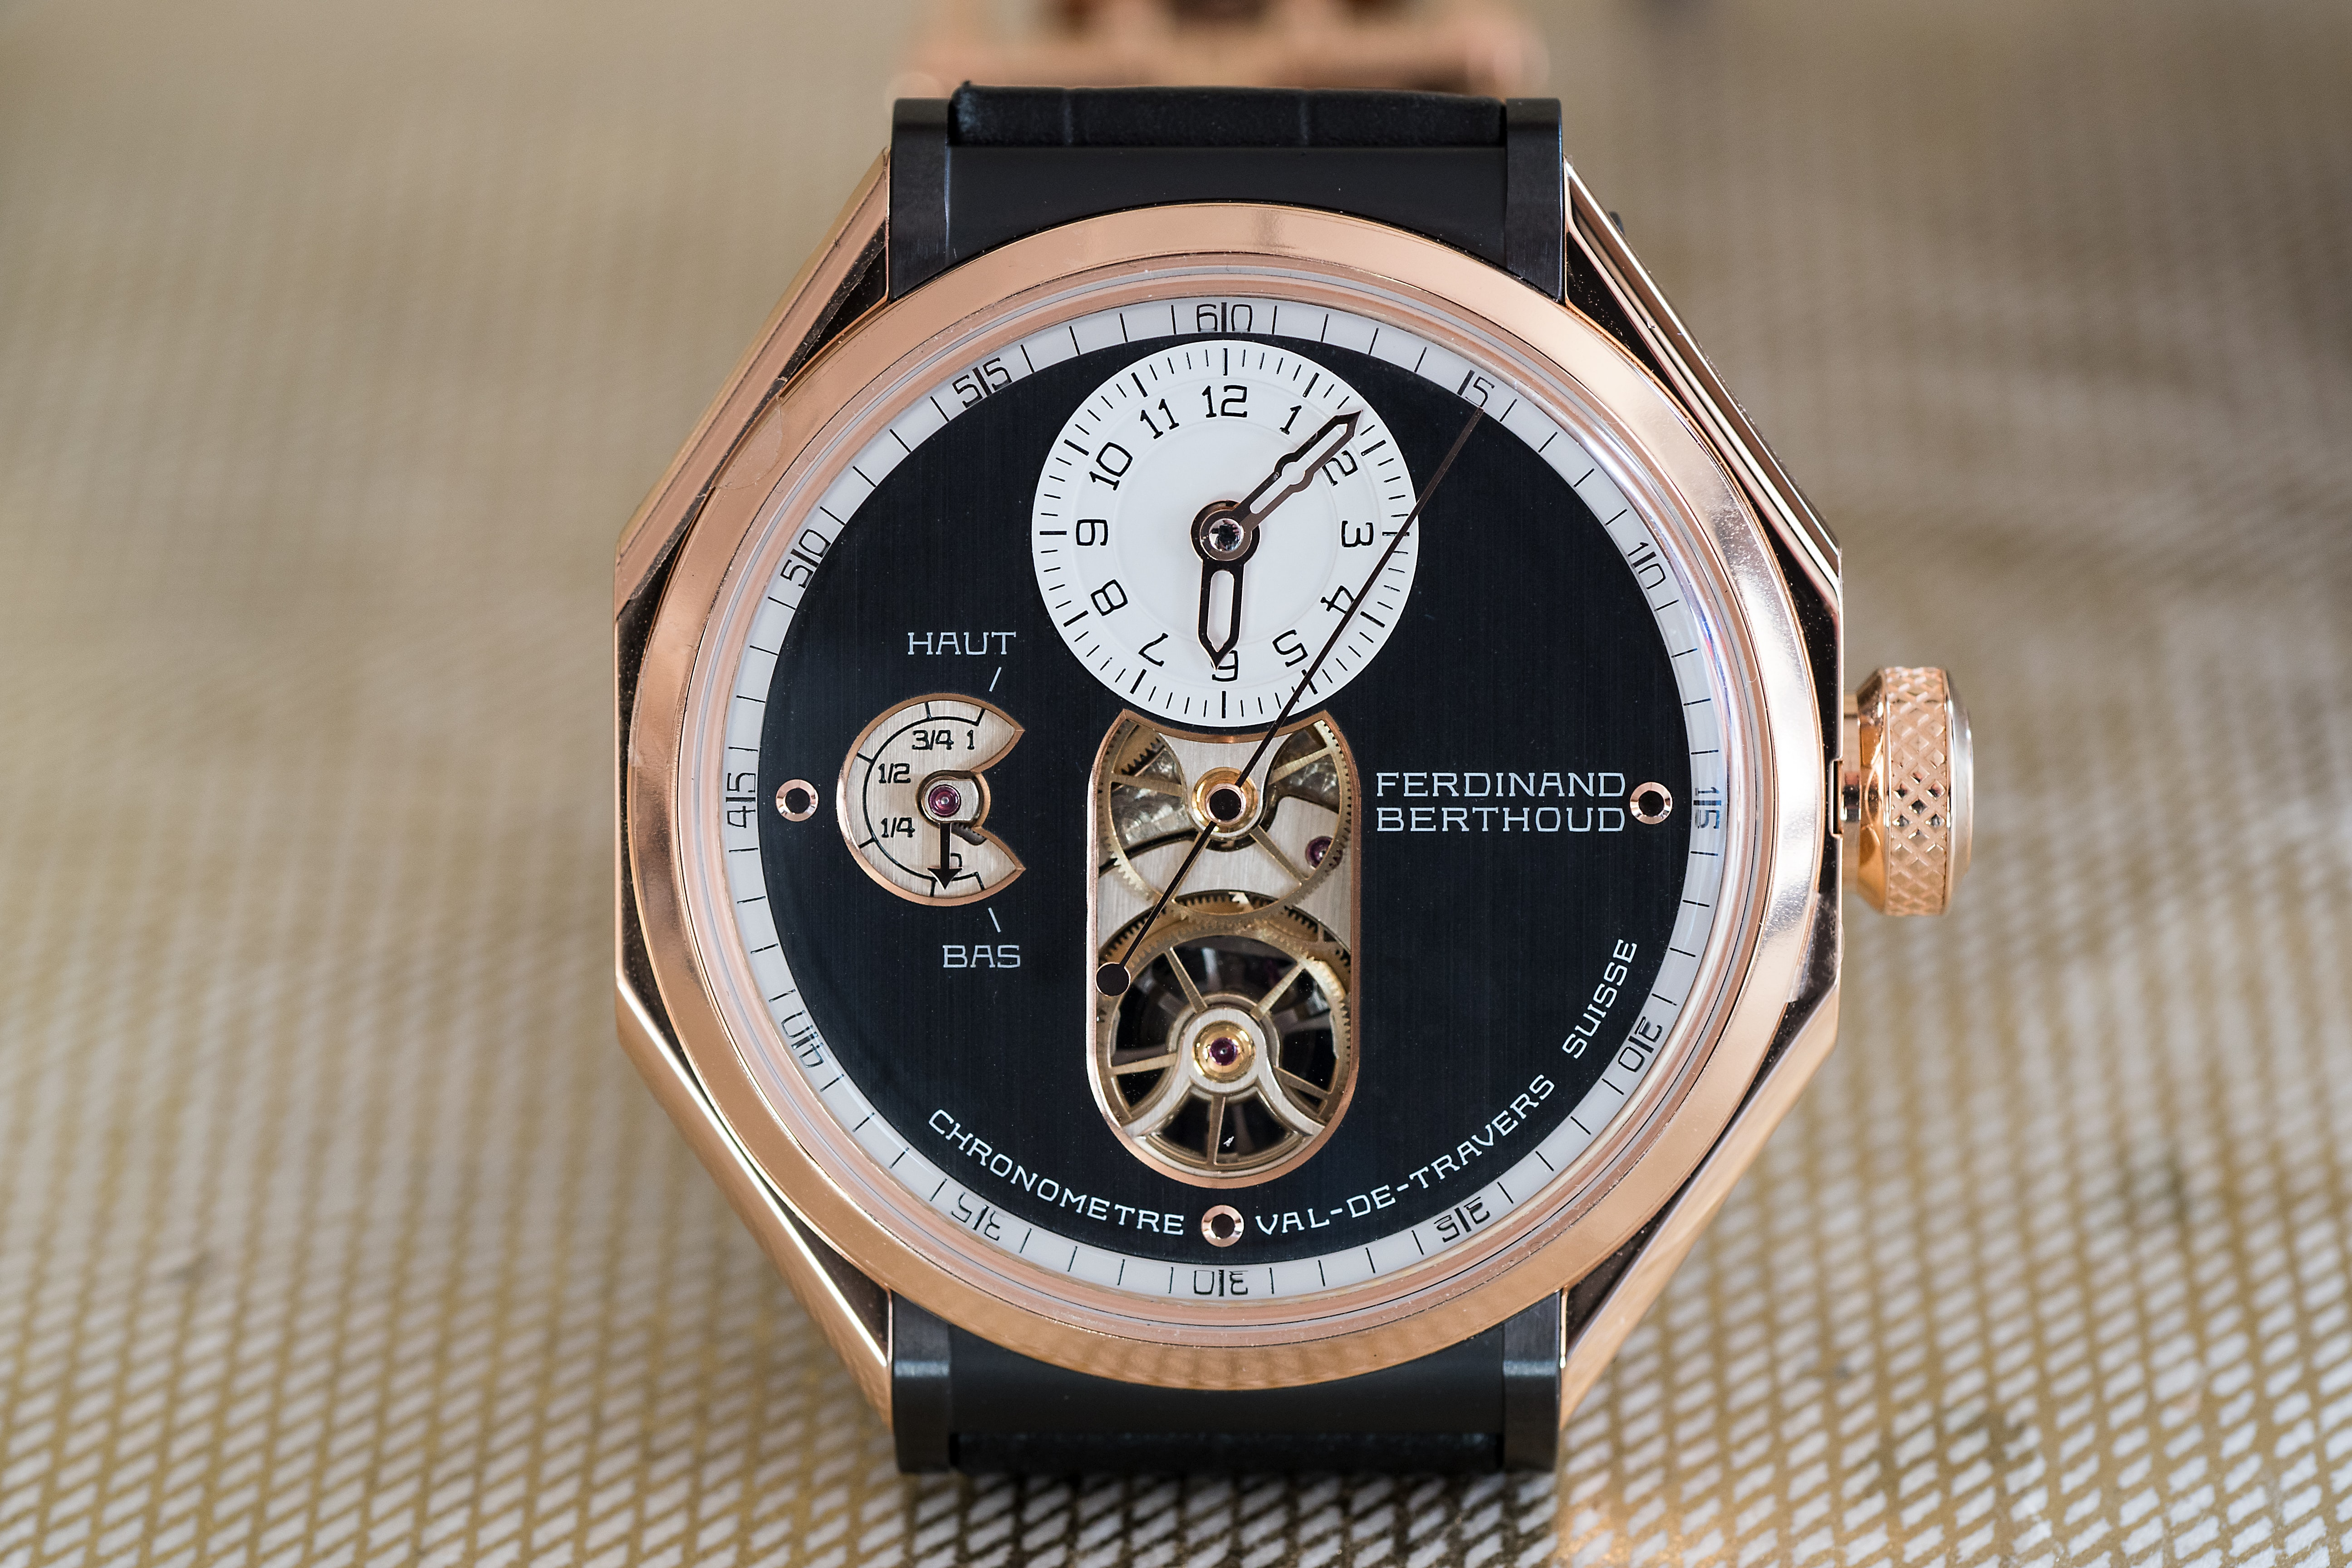 Ferdinand Berthoud Chronomtre FB 1 A Week On The Wrist: The Ferdinand Berthoud Chronomtre FB 1 A Week On The Wrist: The Ferdinand Berthoud Chronomtre FB 1 P6120253